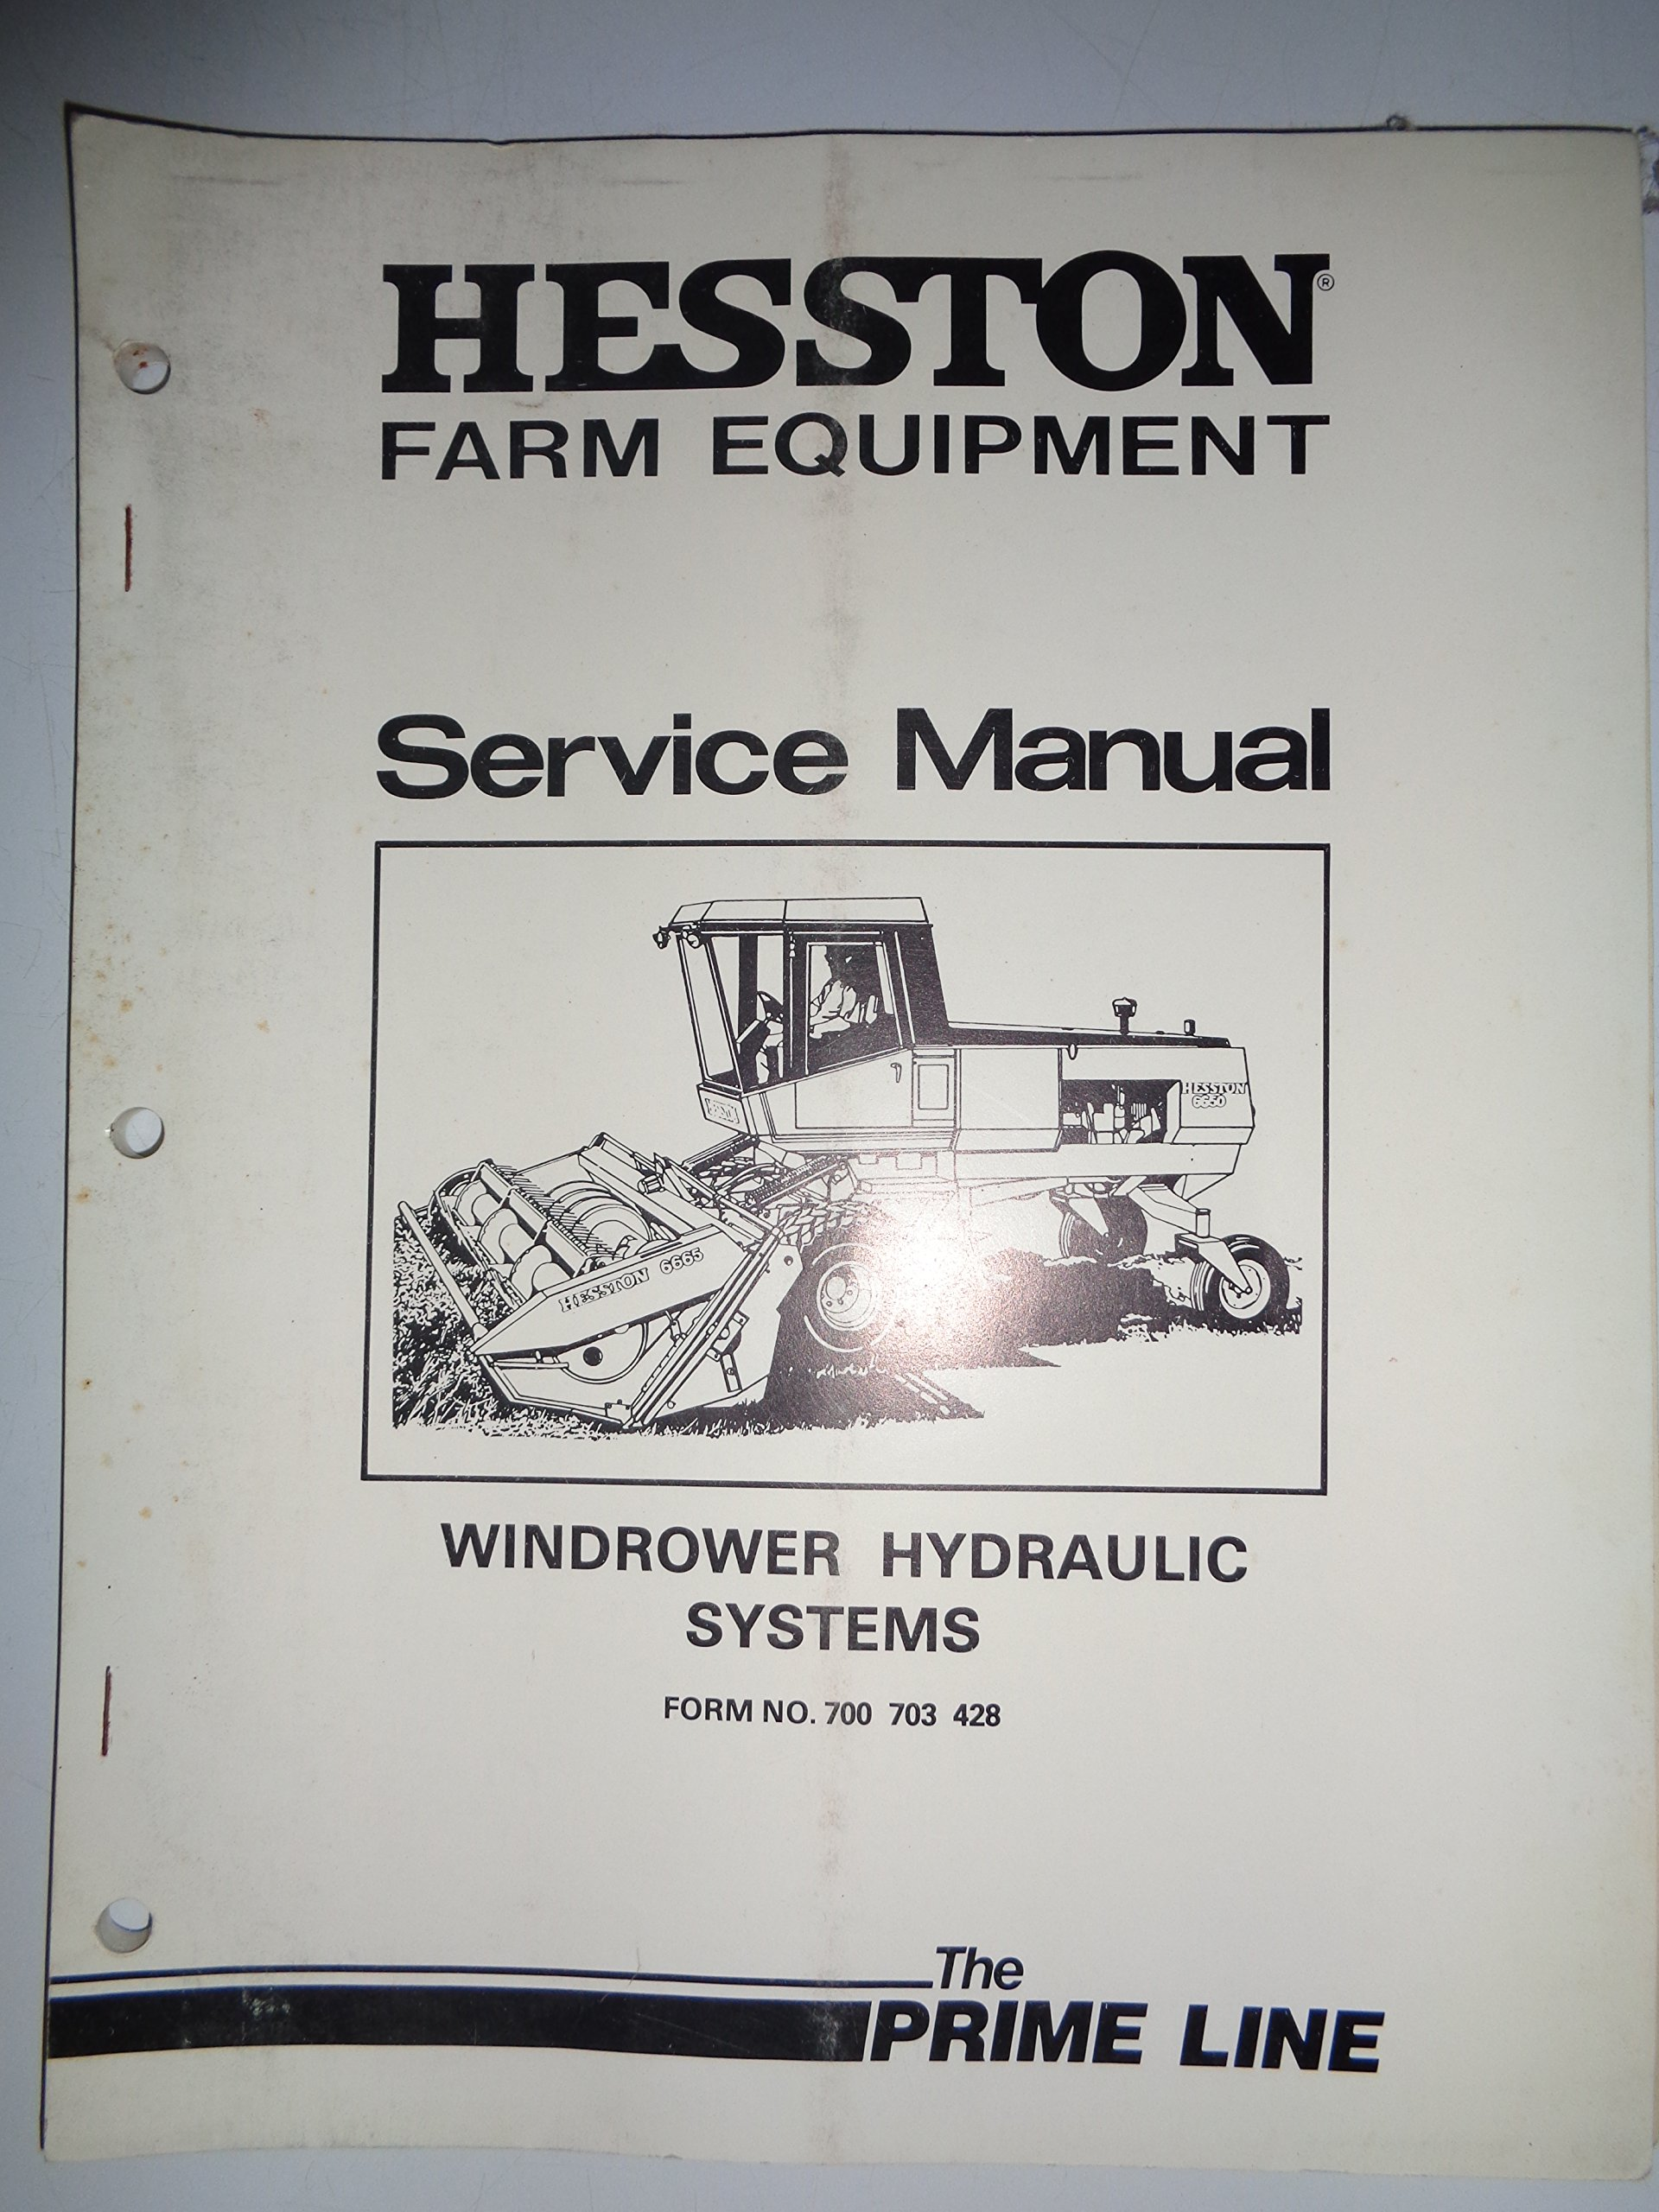 Hesston HYDRAULIC SYSTEM Service Repair Manual for the Model 700 703 428  Windrower: HESSTON, Heston: Amazon.com: Books